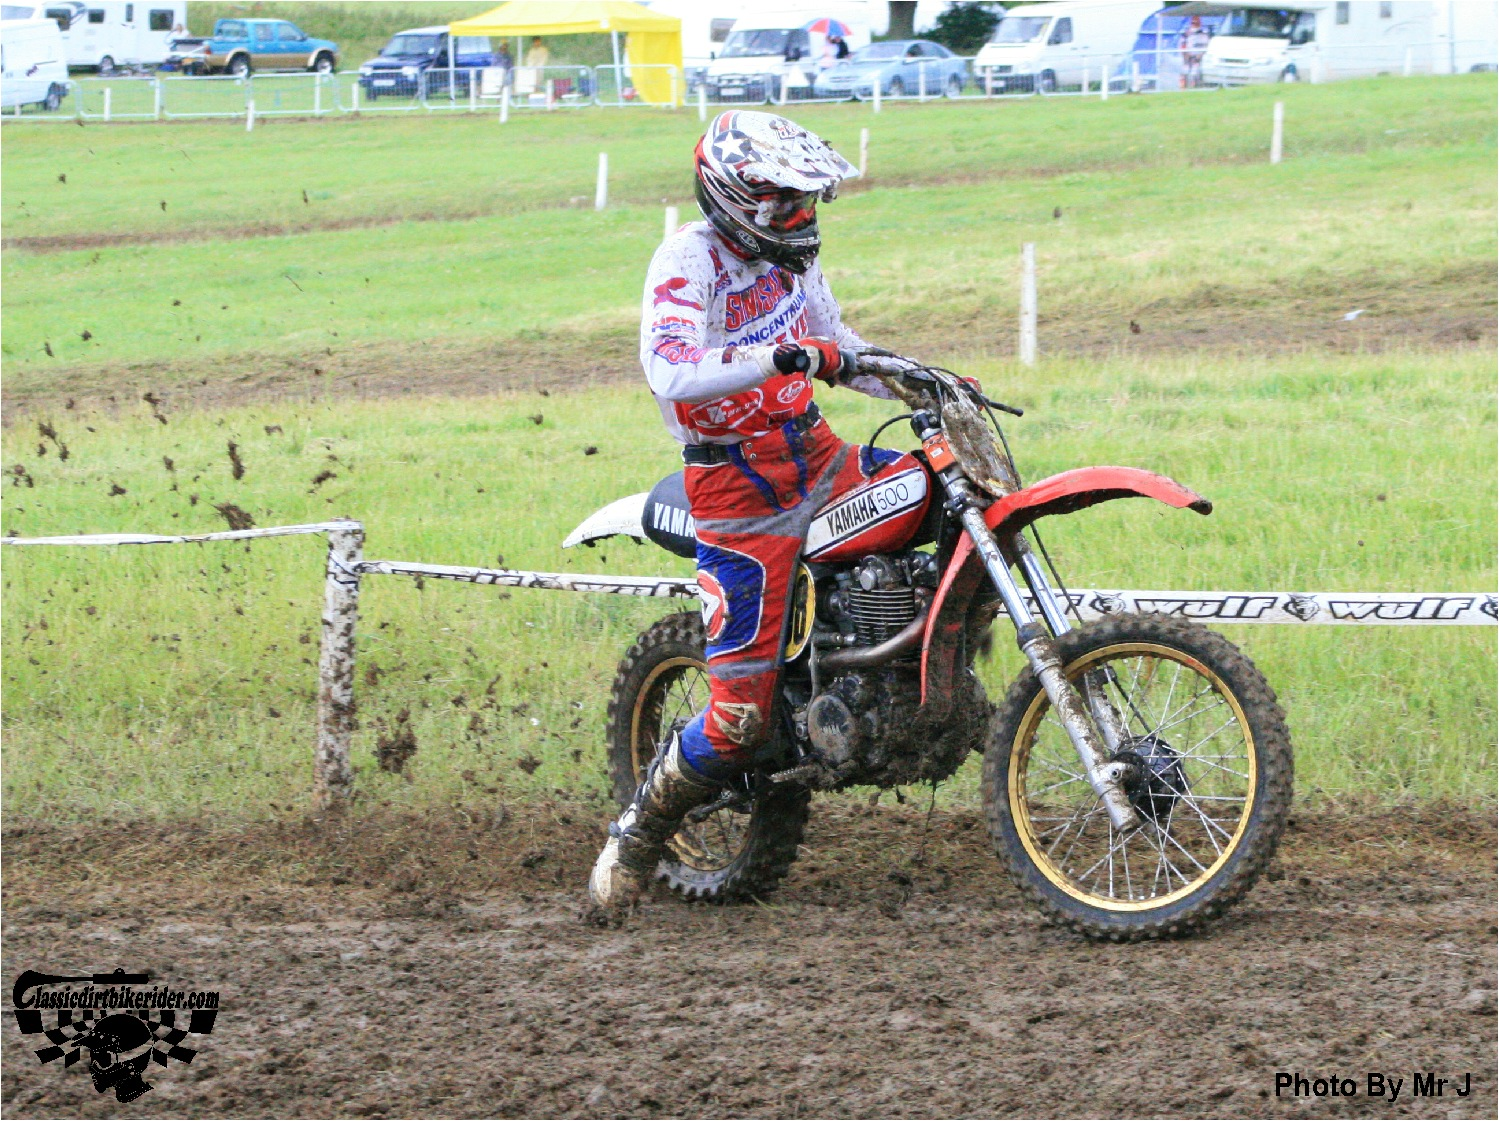 king of the castle 2015 photos Farleigh Castle twinshock motocross classicdirtbikerider.com 112